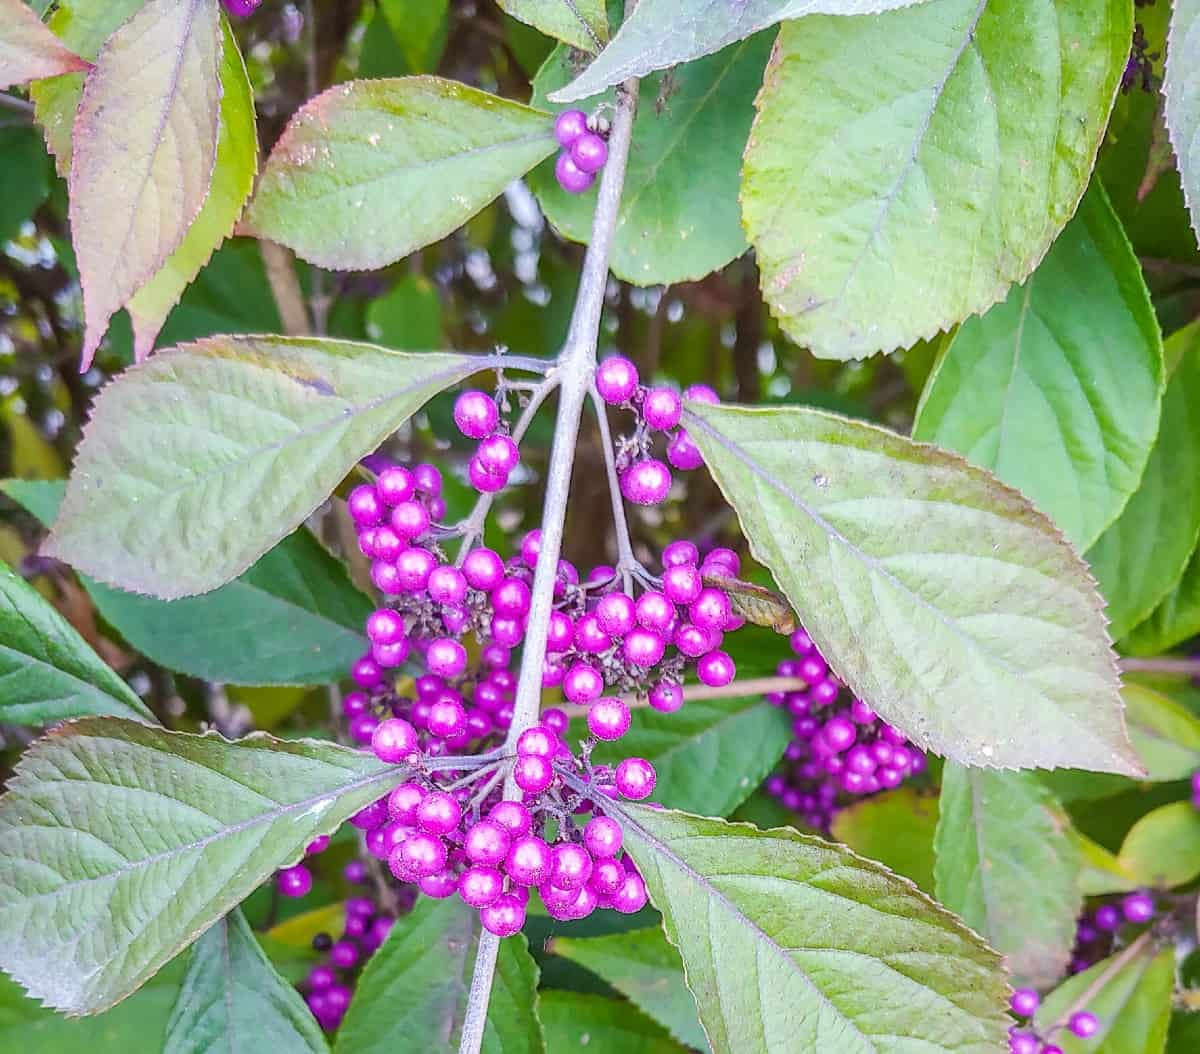 beautyberry is a shrub with attractive flowers and berries